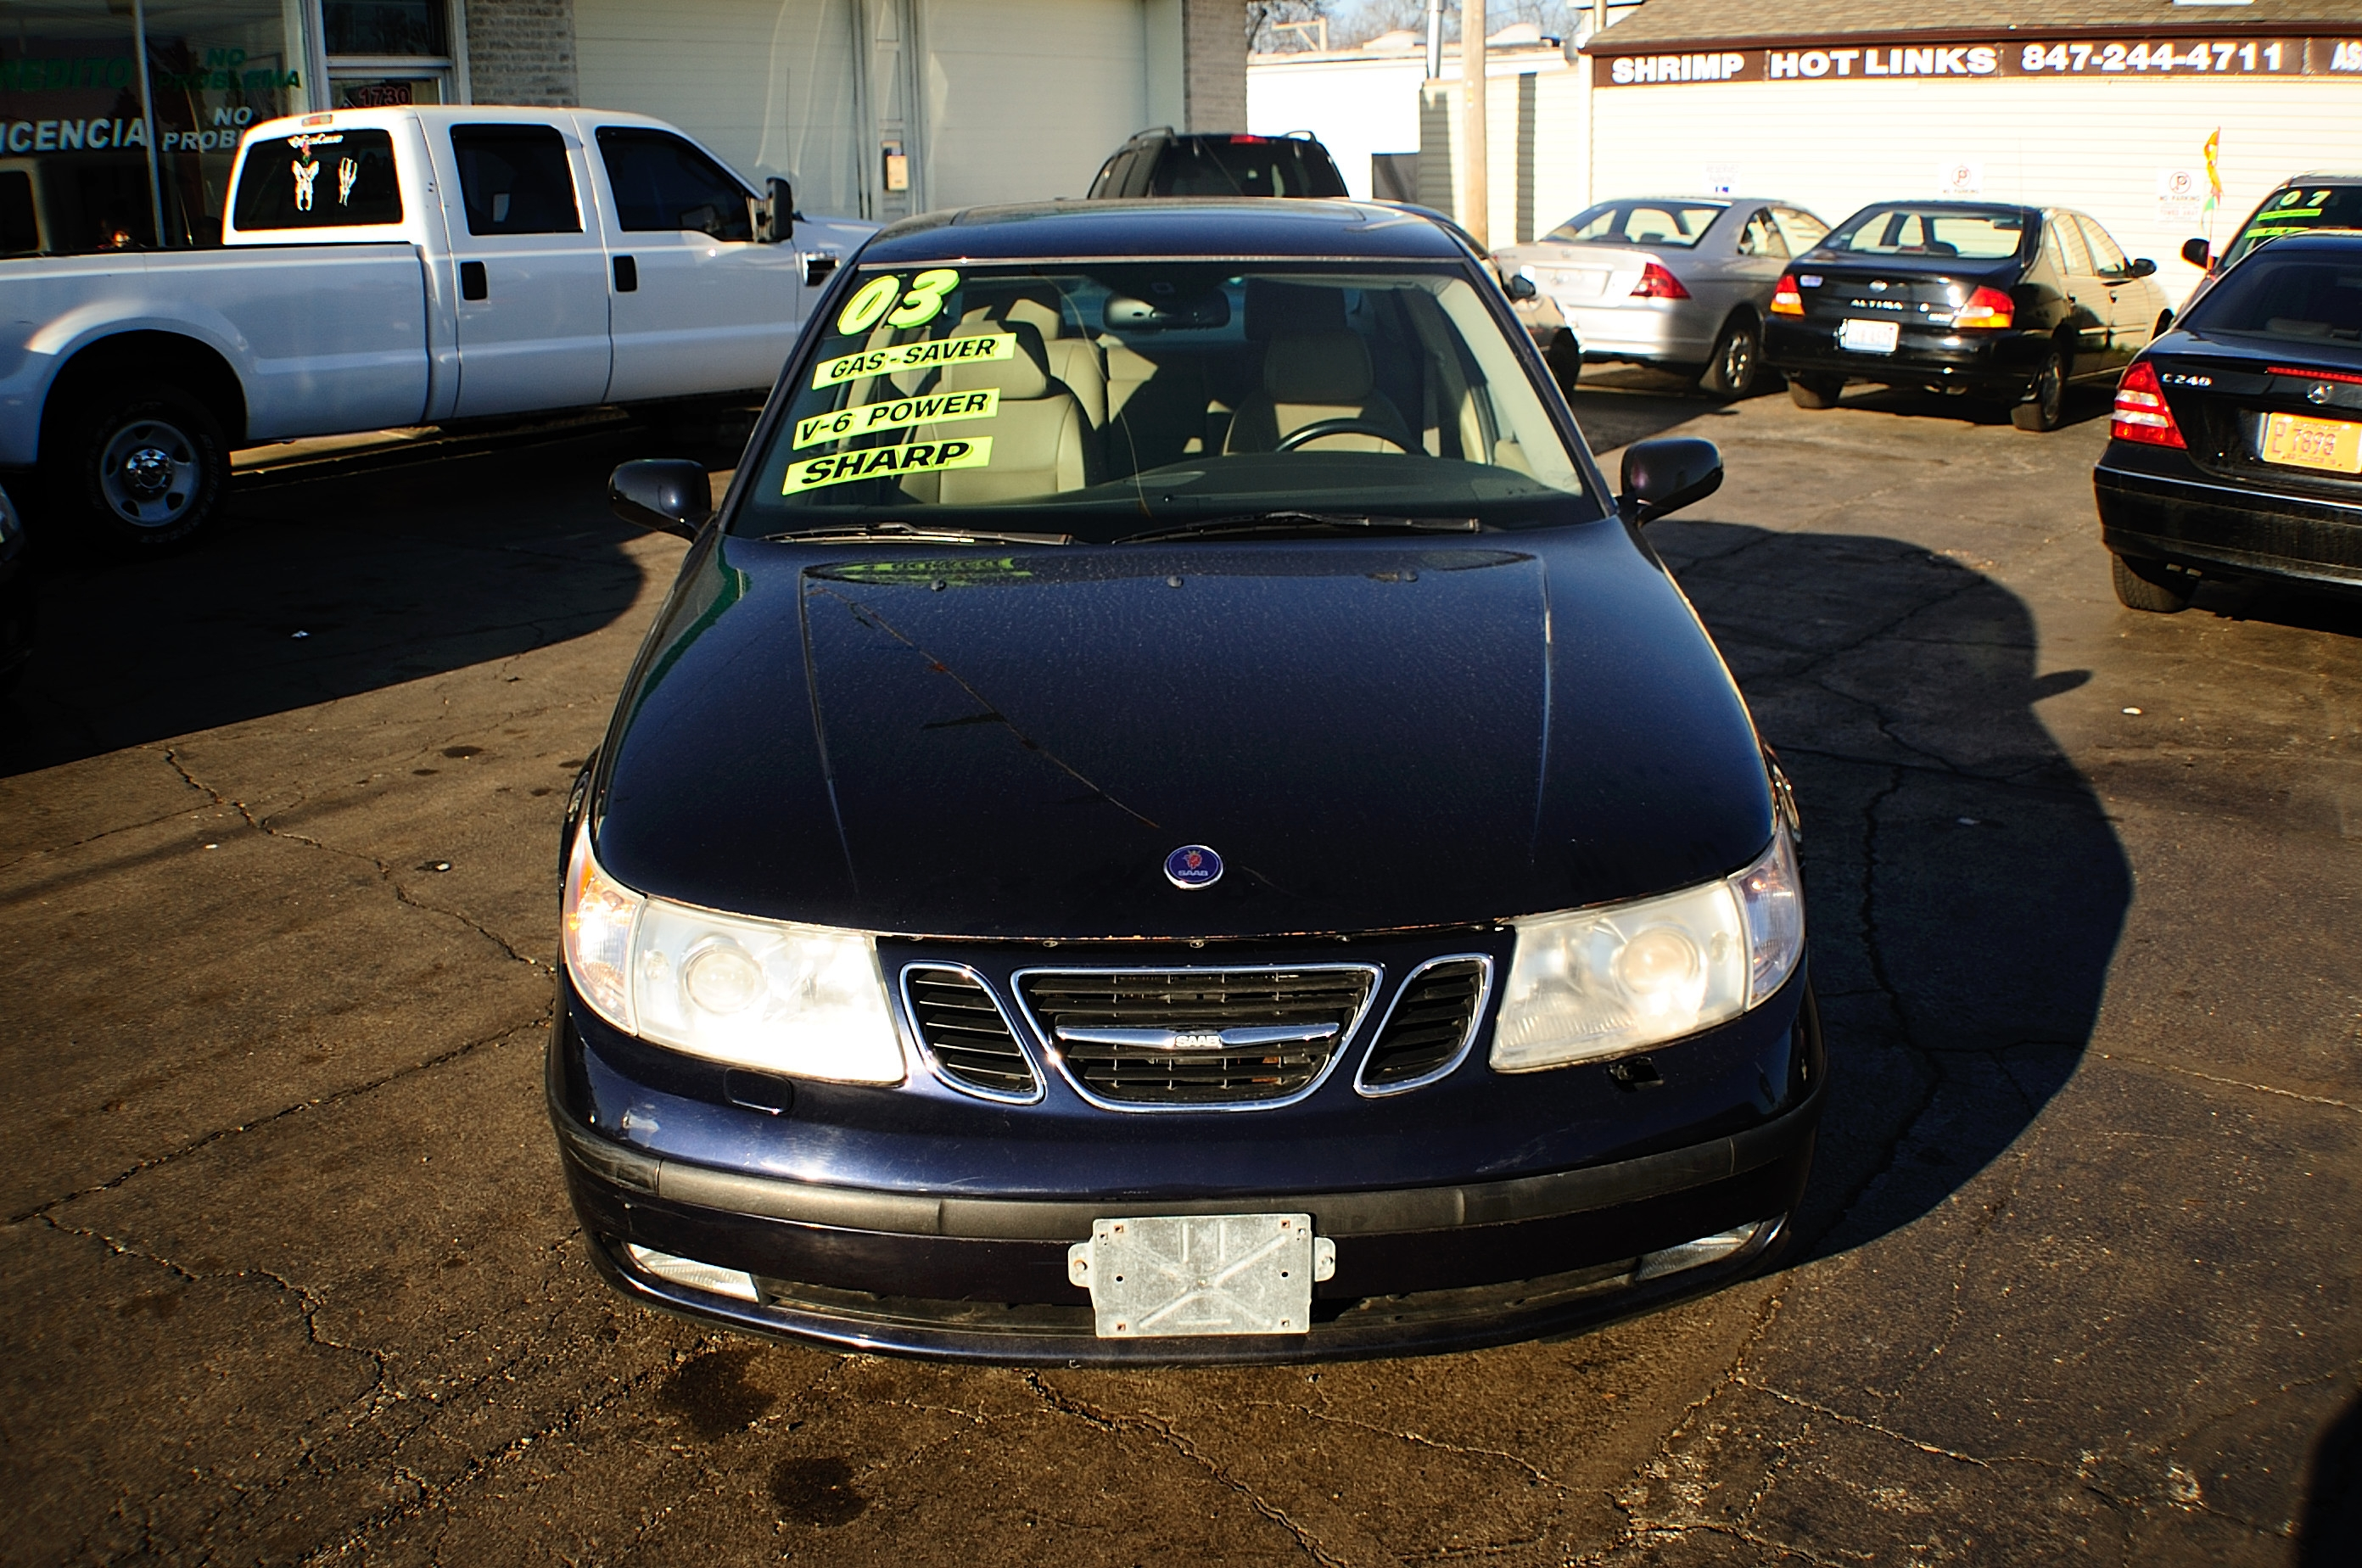 2003 Saab 4Dr blue sedan sale used car Gurnee Kenosha Mchenry